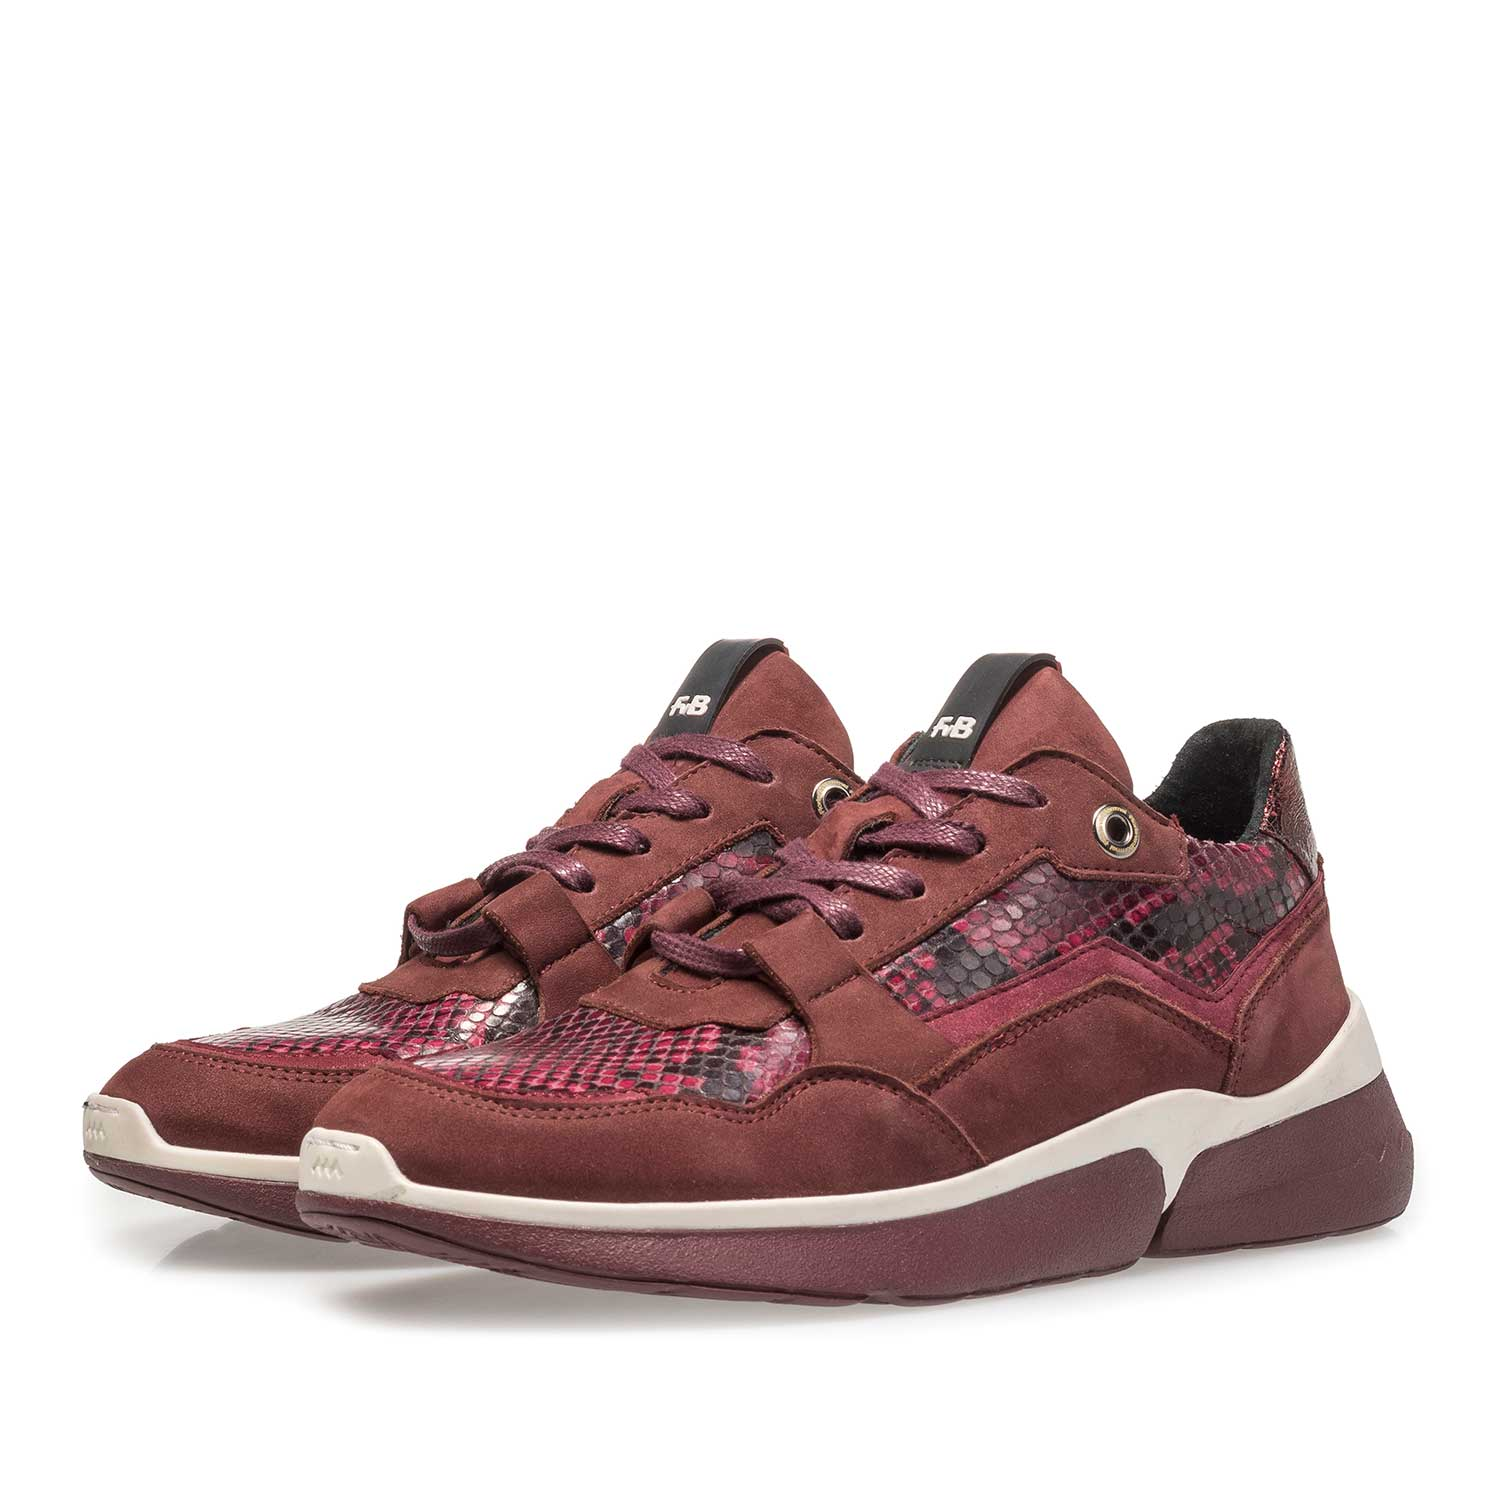 85291/02 - Burgundy red suede leather sneaker with snake print